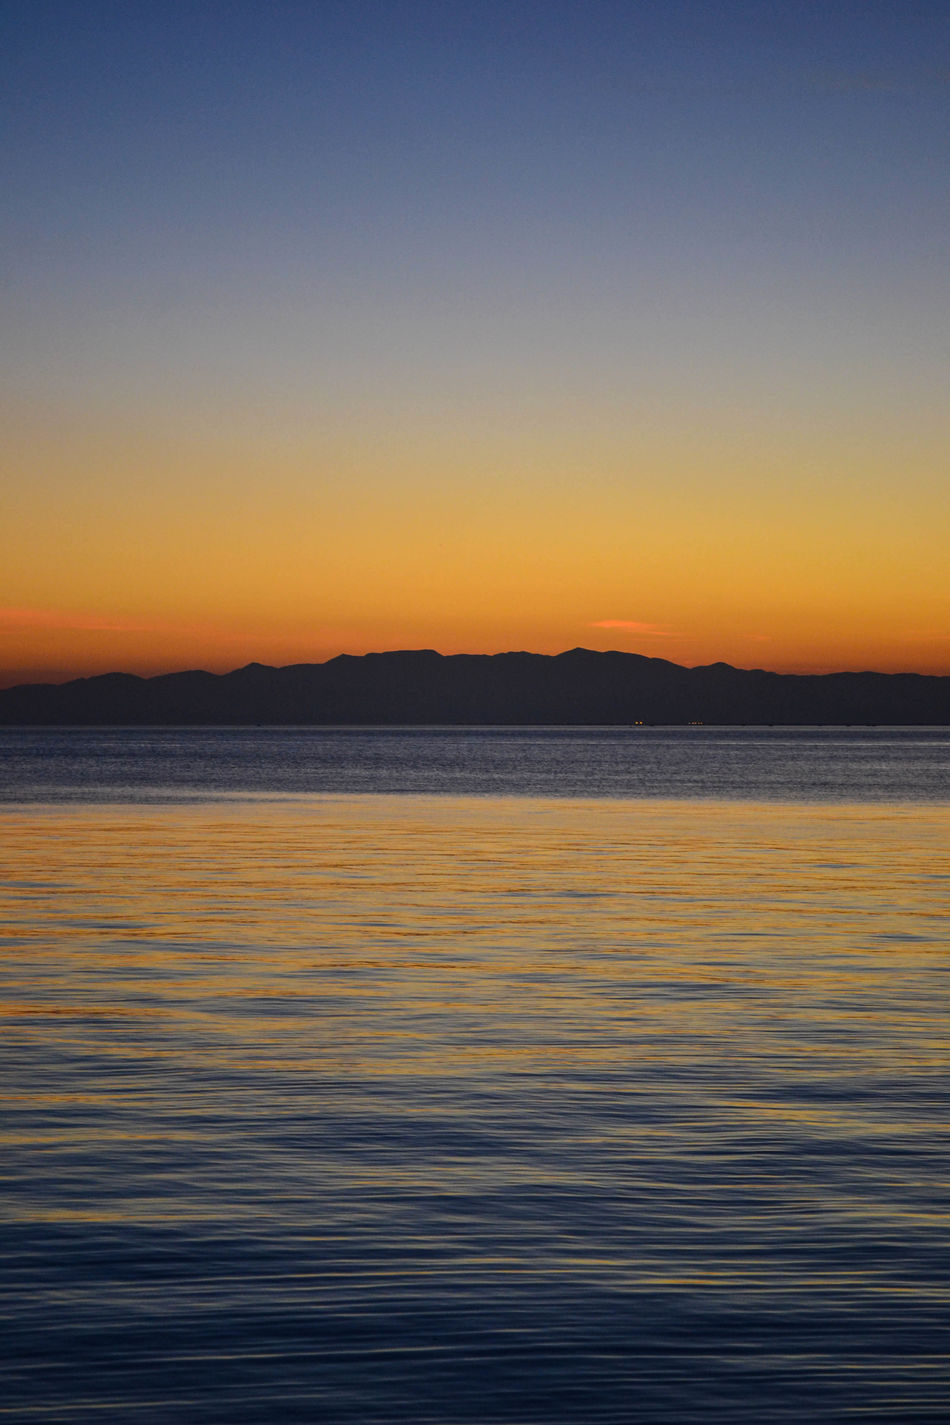 The mountain and the sea Thessaloniki Salonicco Greece Grecia Mountain Sea Sunset Reflection Orange Waves Nature Sky Skyporn Landscape Water Outdoors Scenics Beauty In Nature Horizon Over Water